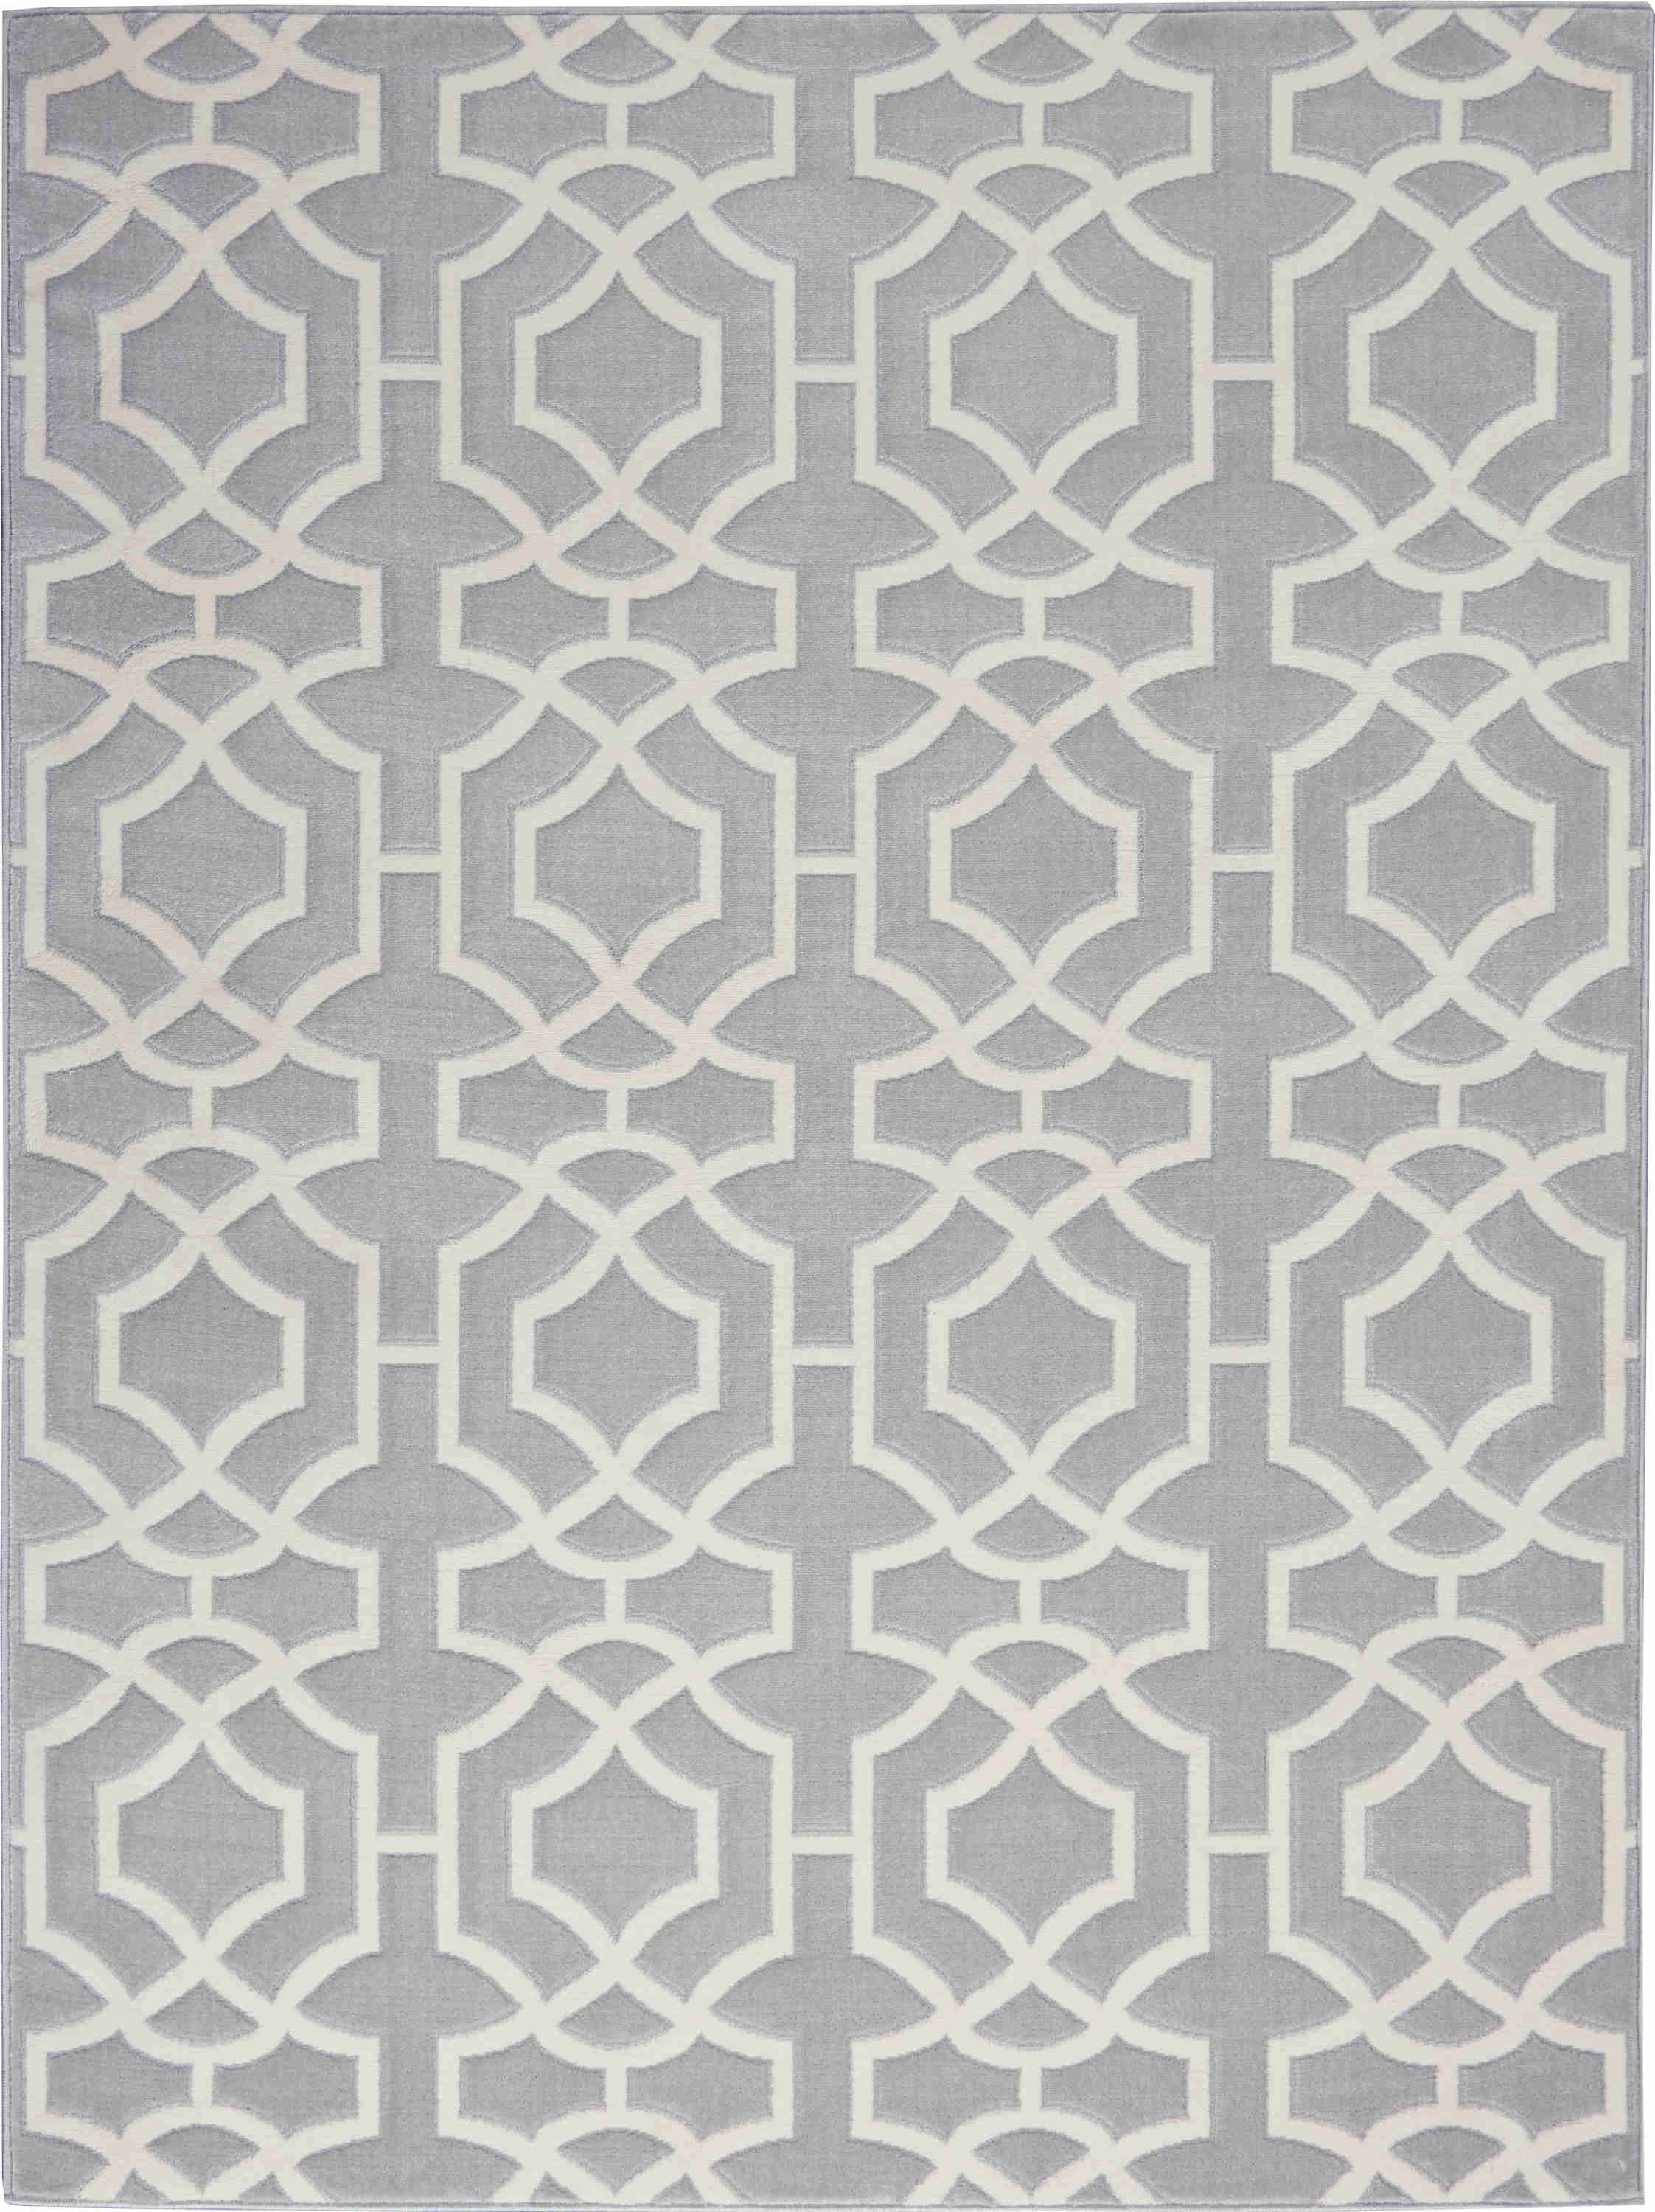 Inspire Me! Home Décor Joli Contemporary Grey Rug Imhr2